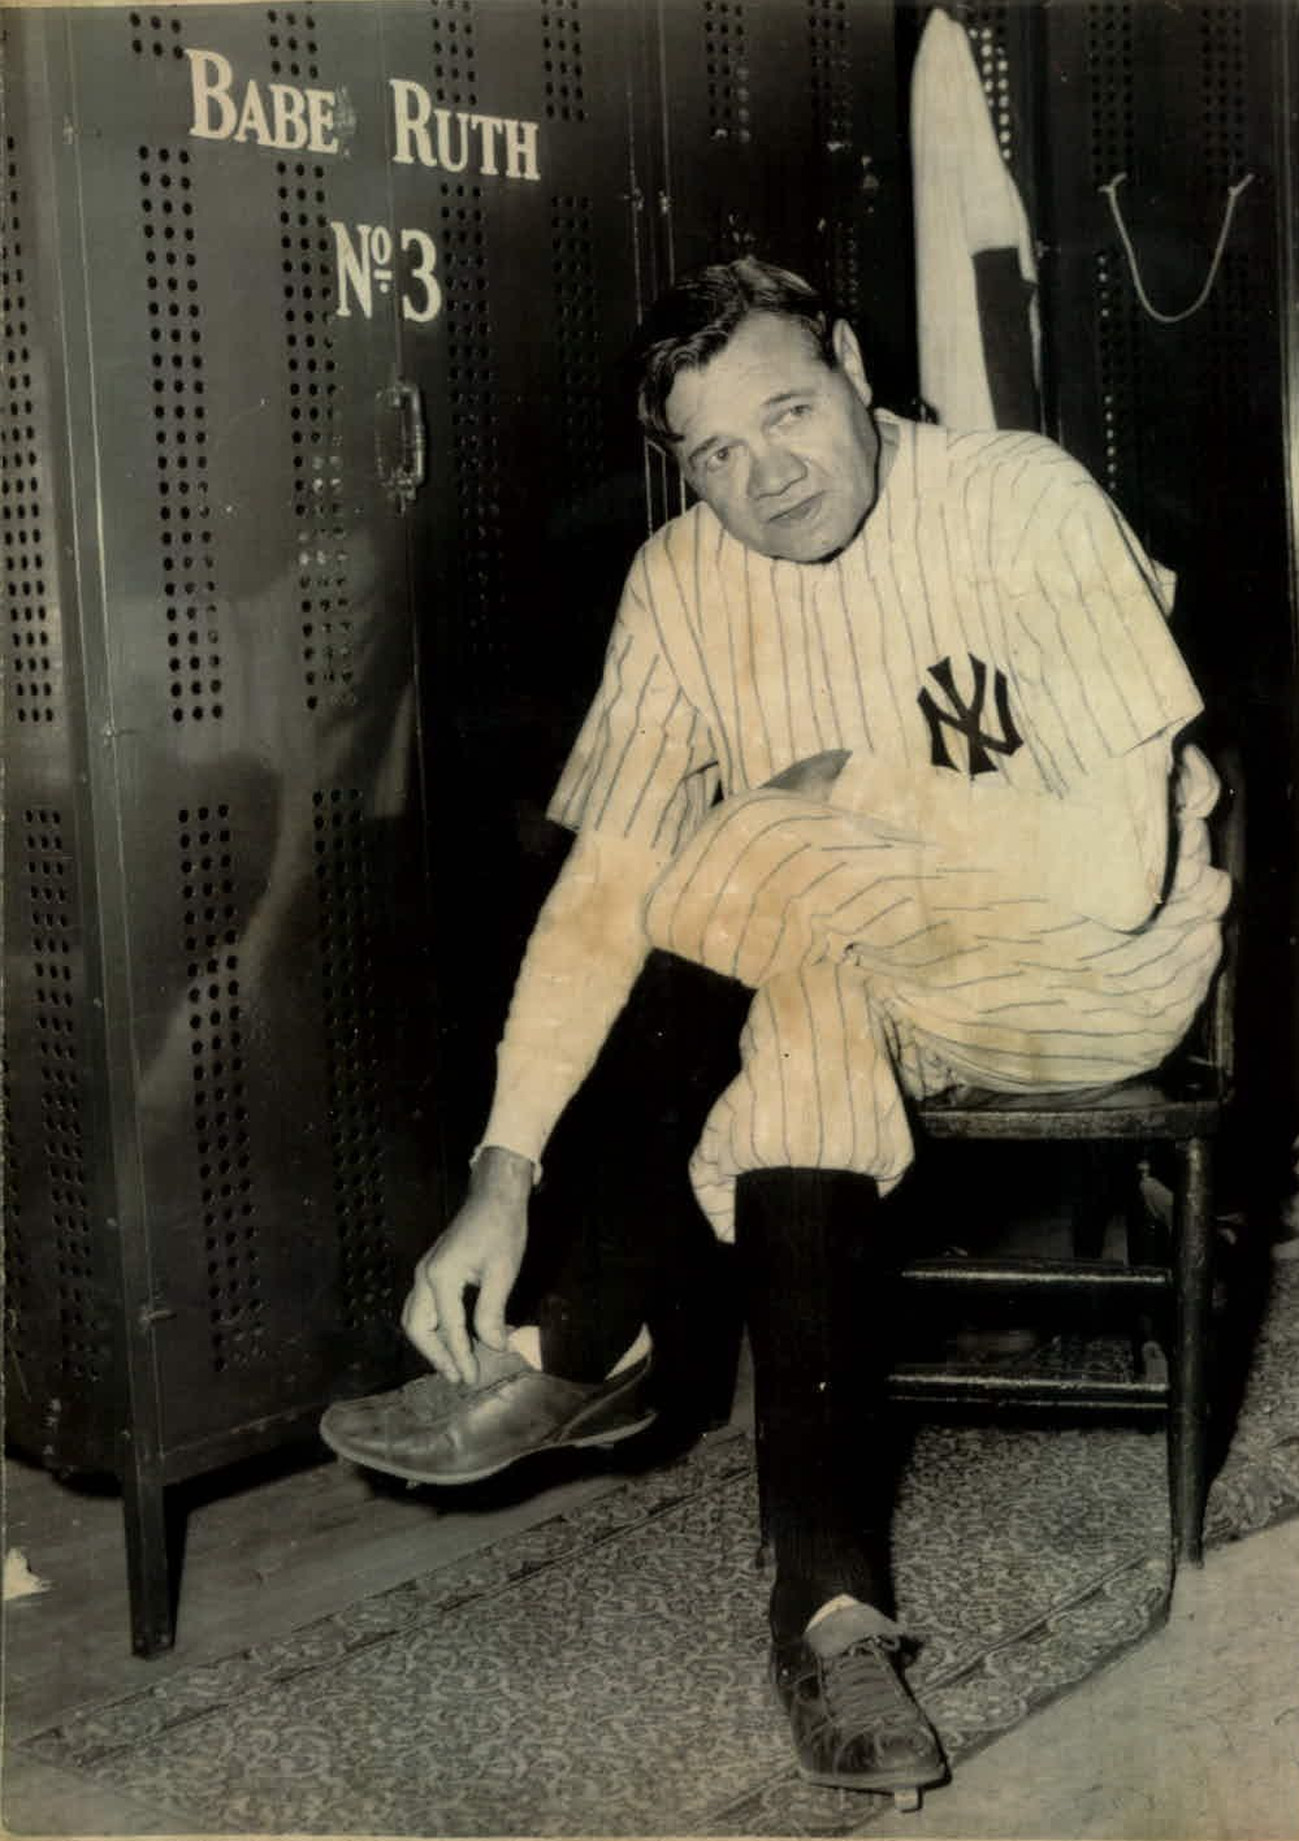 ff963d5d2b1 This Is The Last Known Photograph Of Babe Ruth